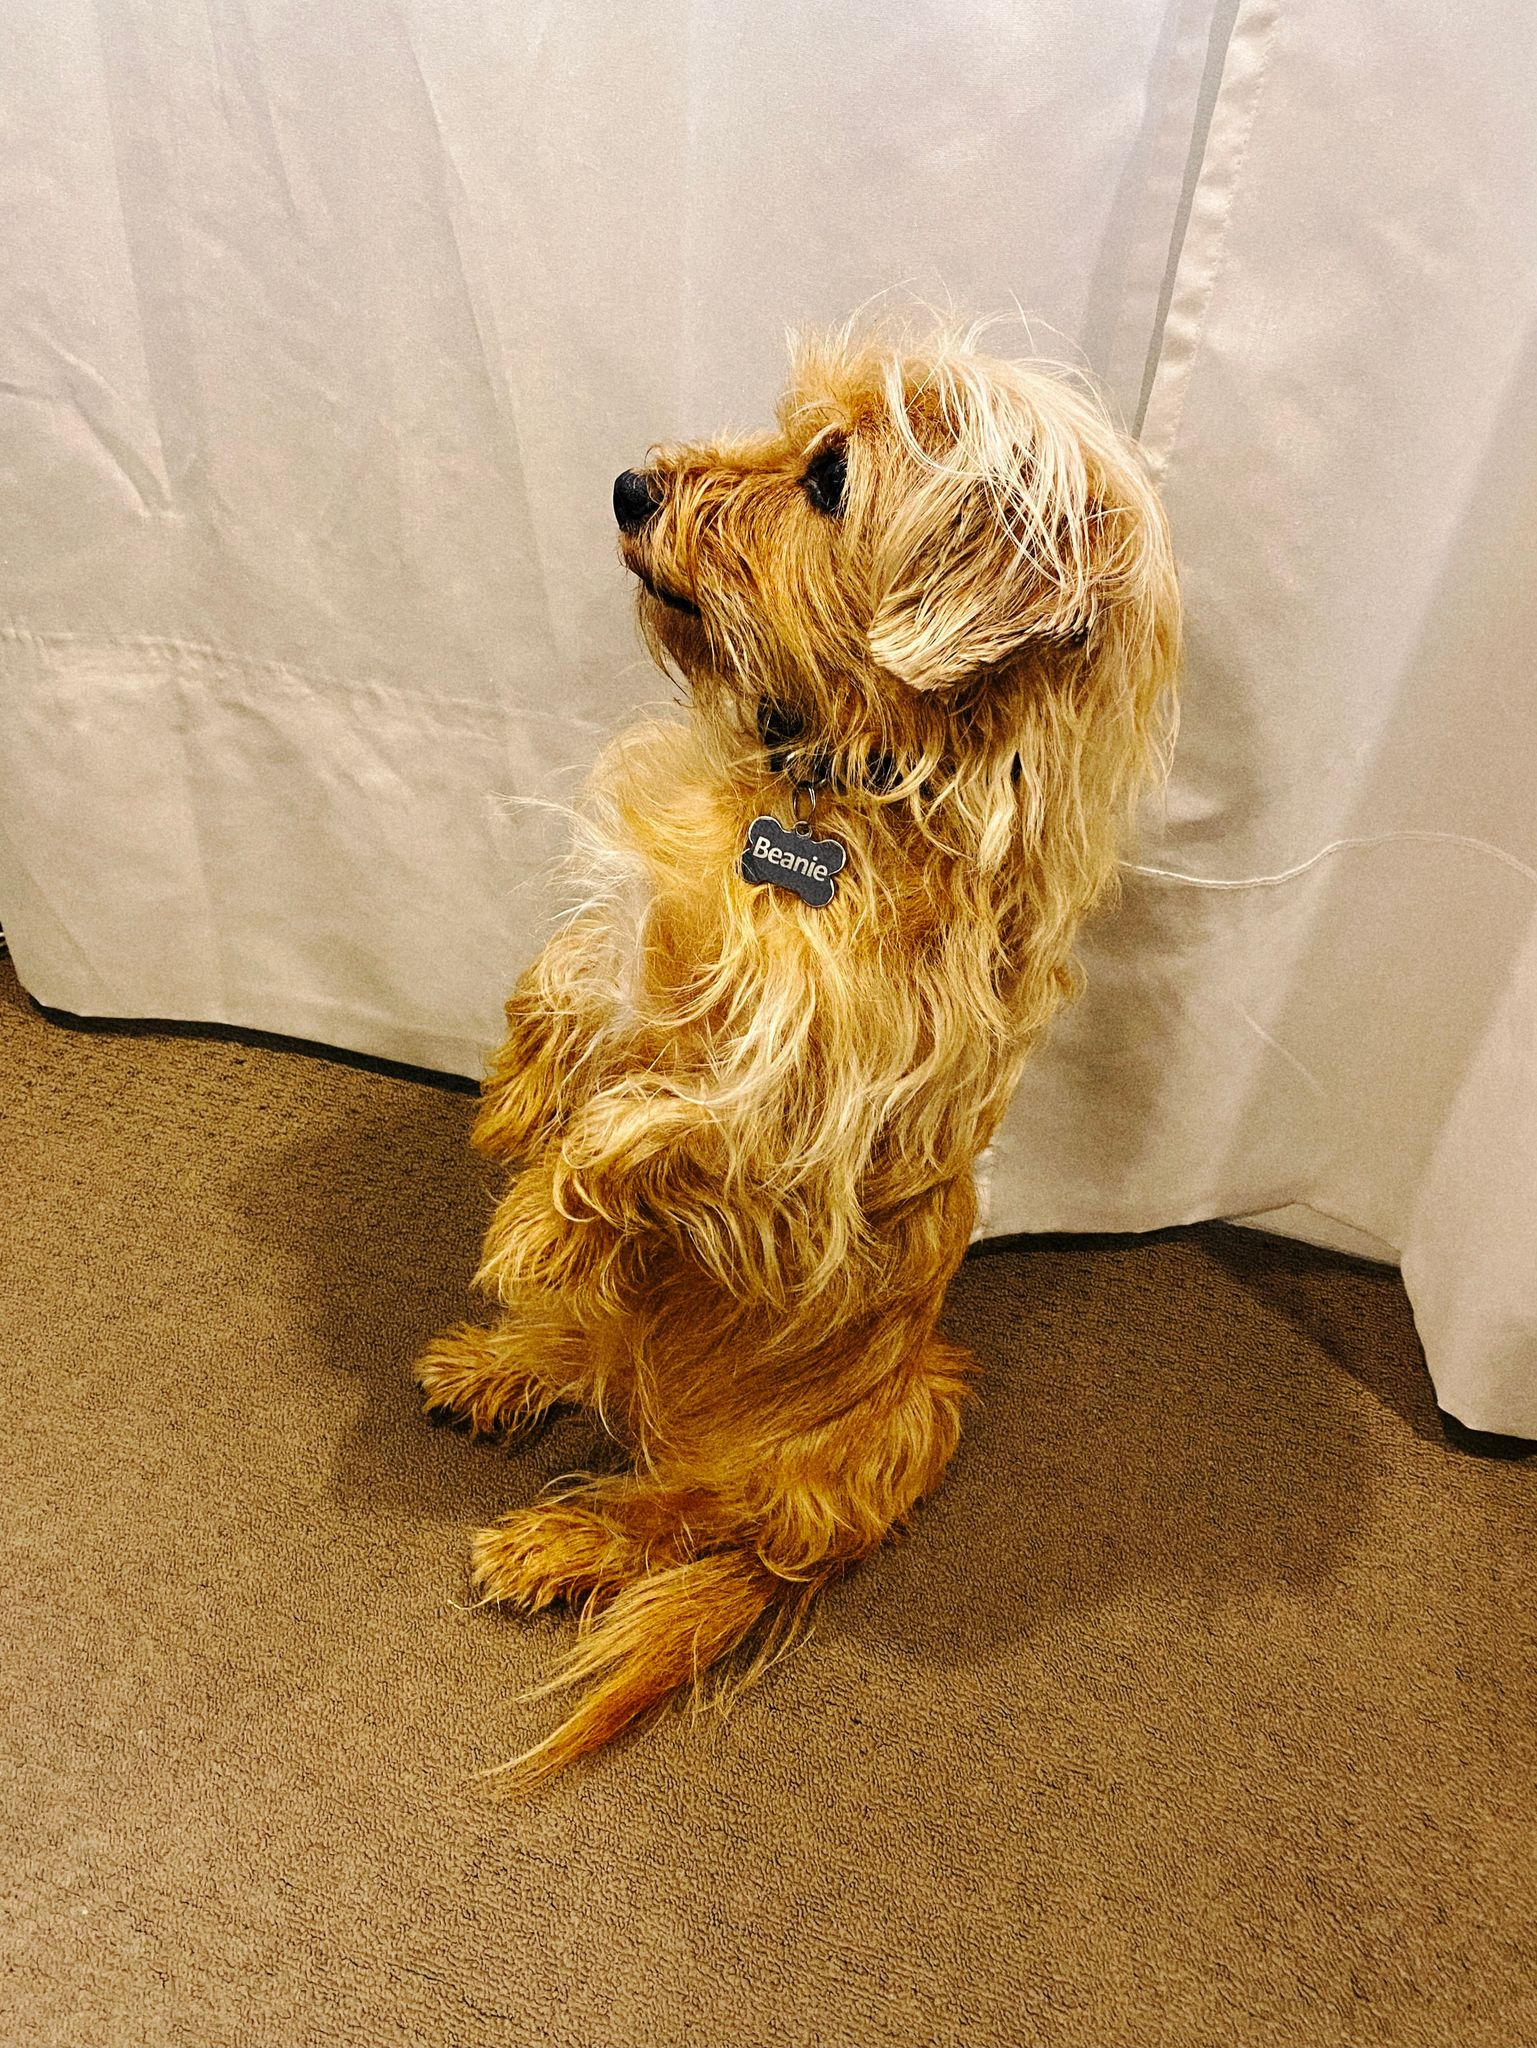 A photo of a small scruffy blonde dog sitting up on his haunches.